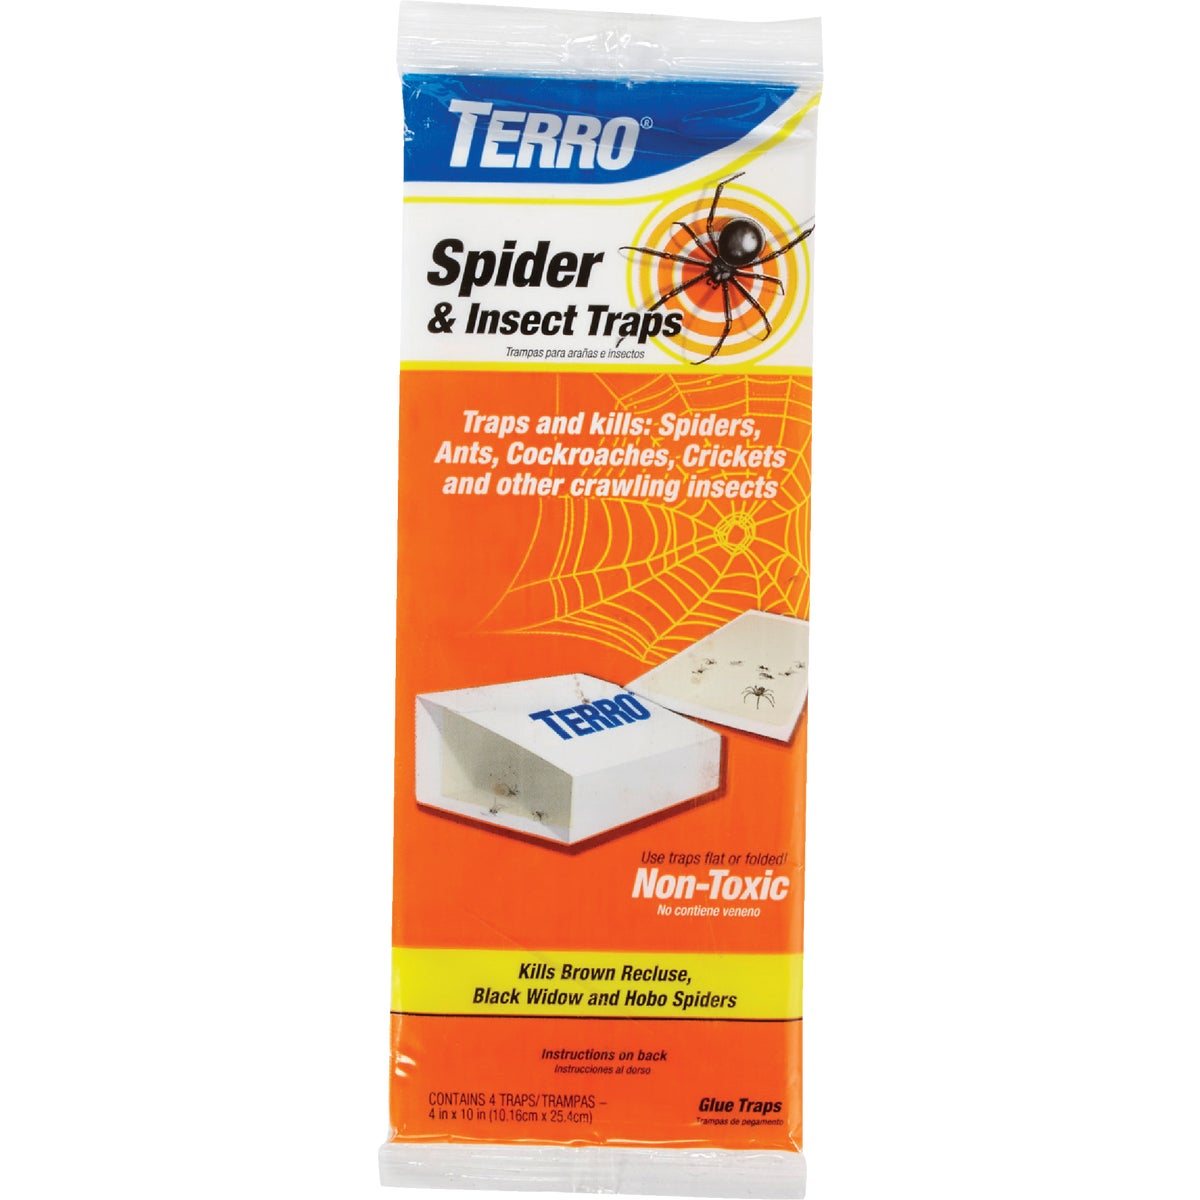 4PK TERRO SPIDER TRAP - T3200 by Woodstream Corp